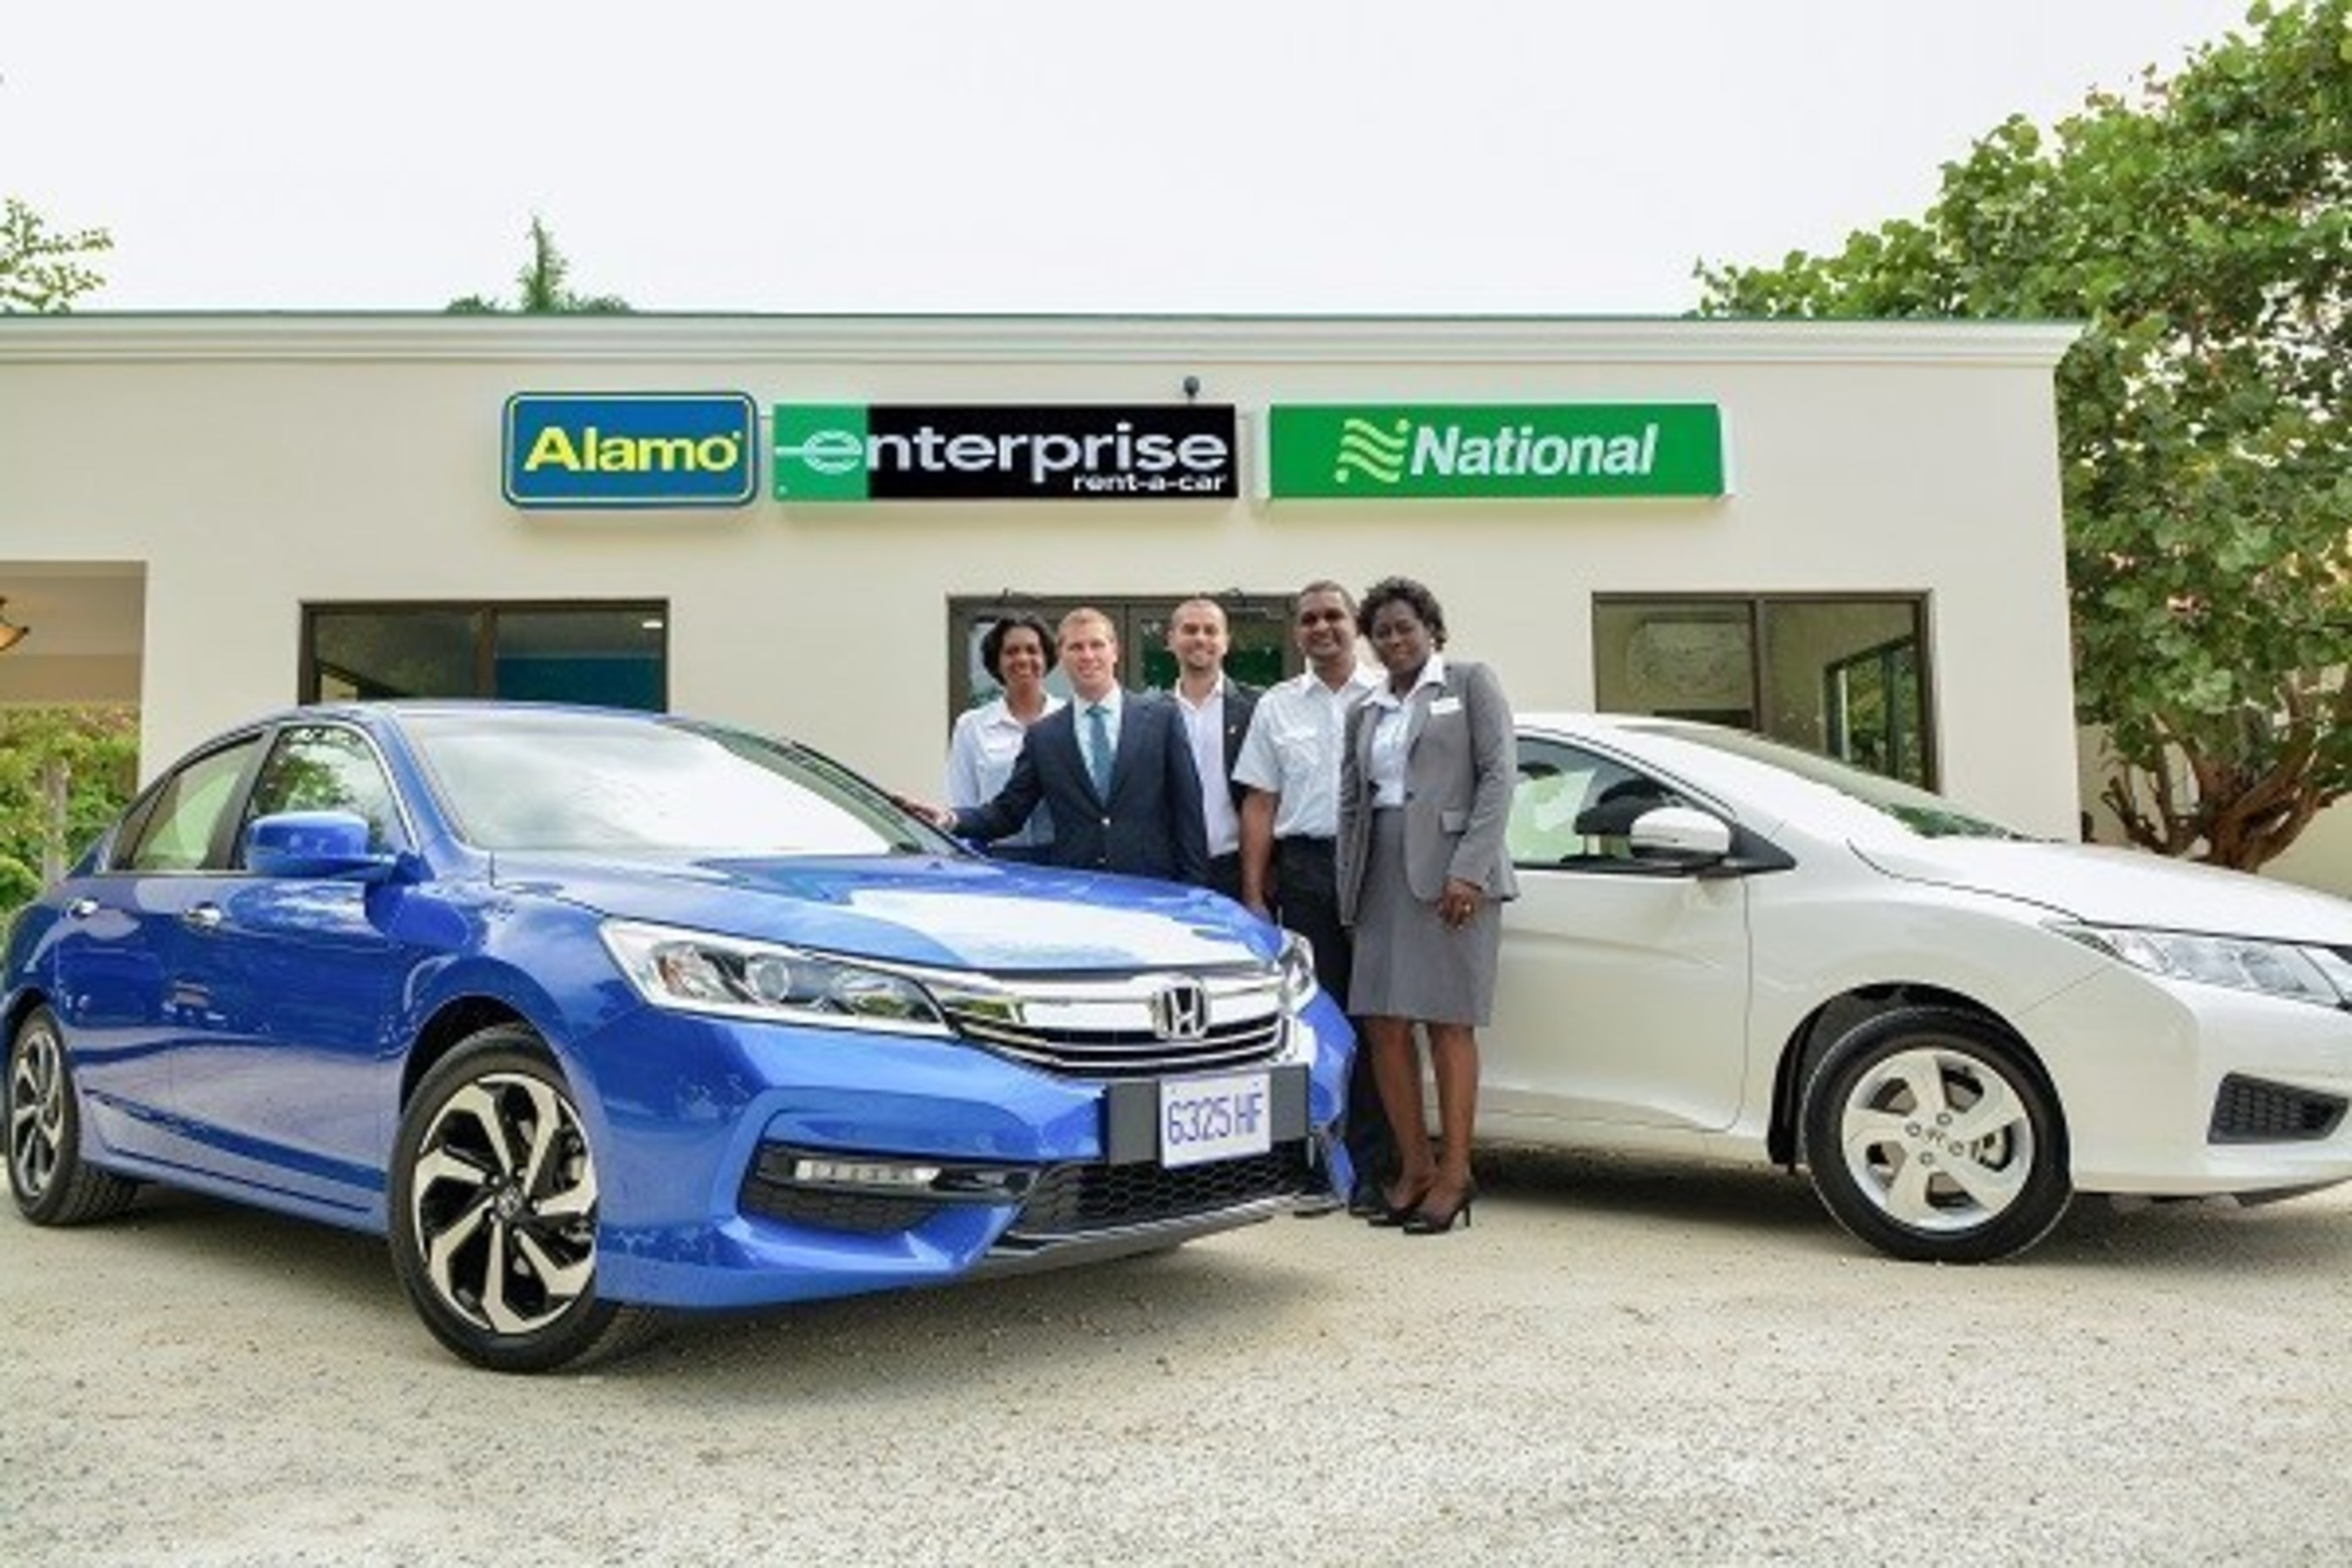 New Enterprise National And Alamo Car Rental Locations Now